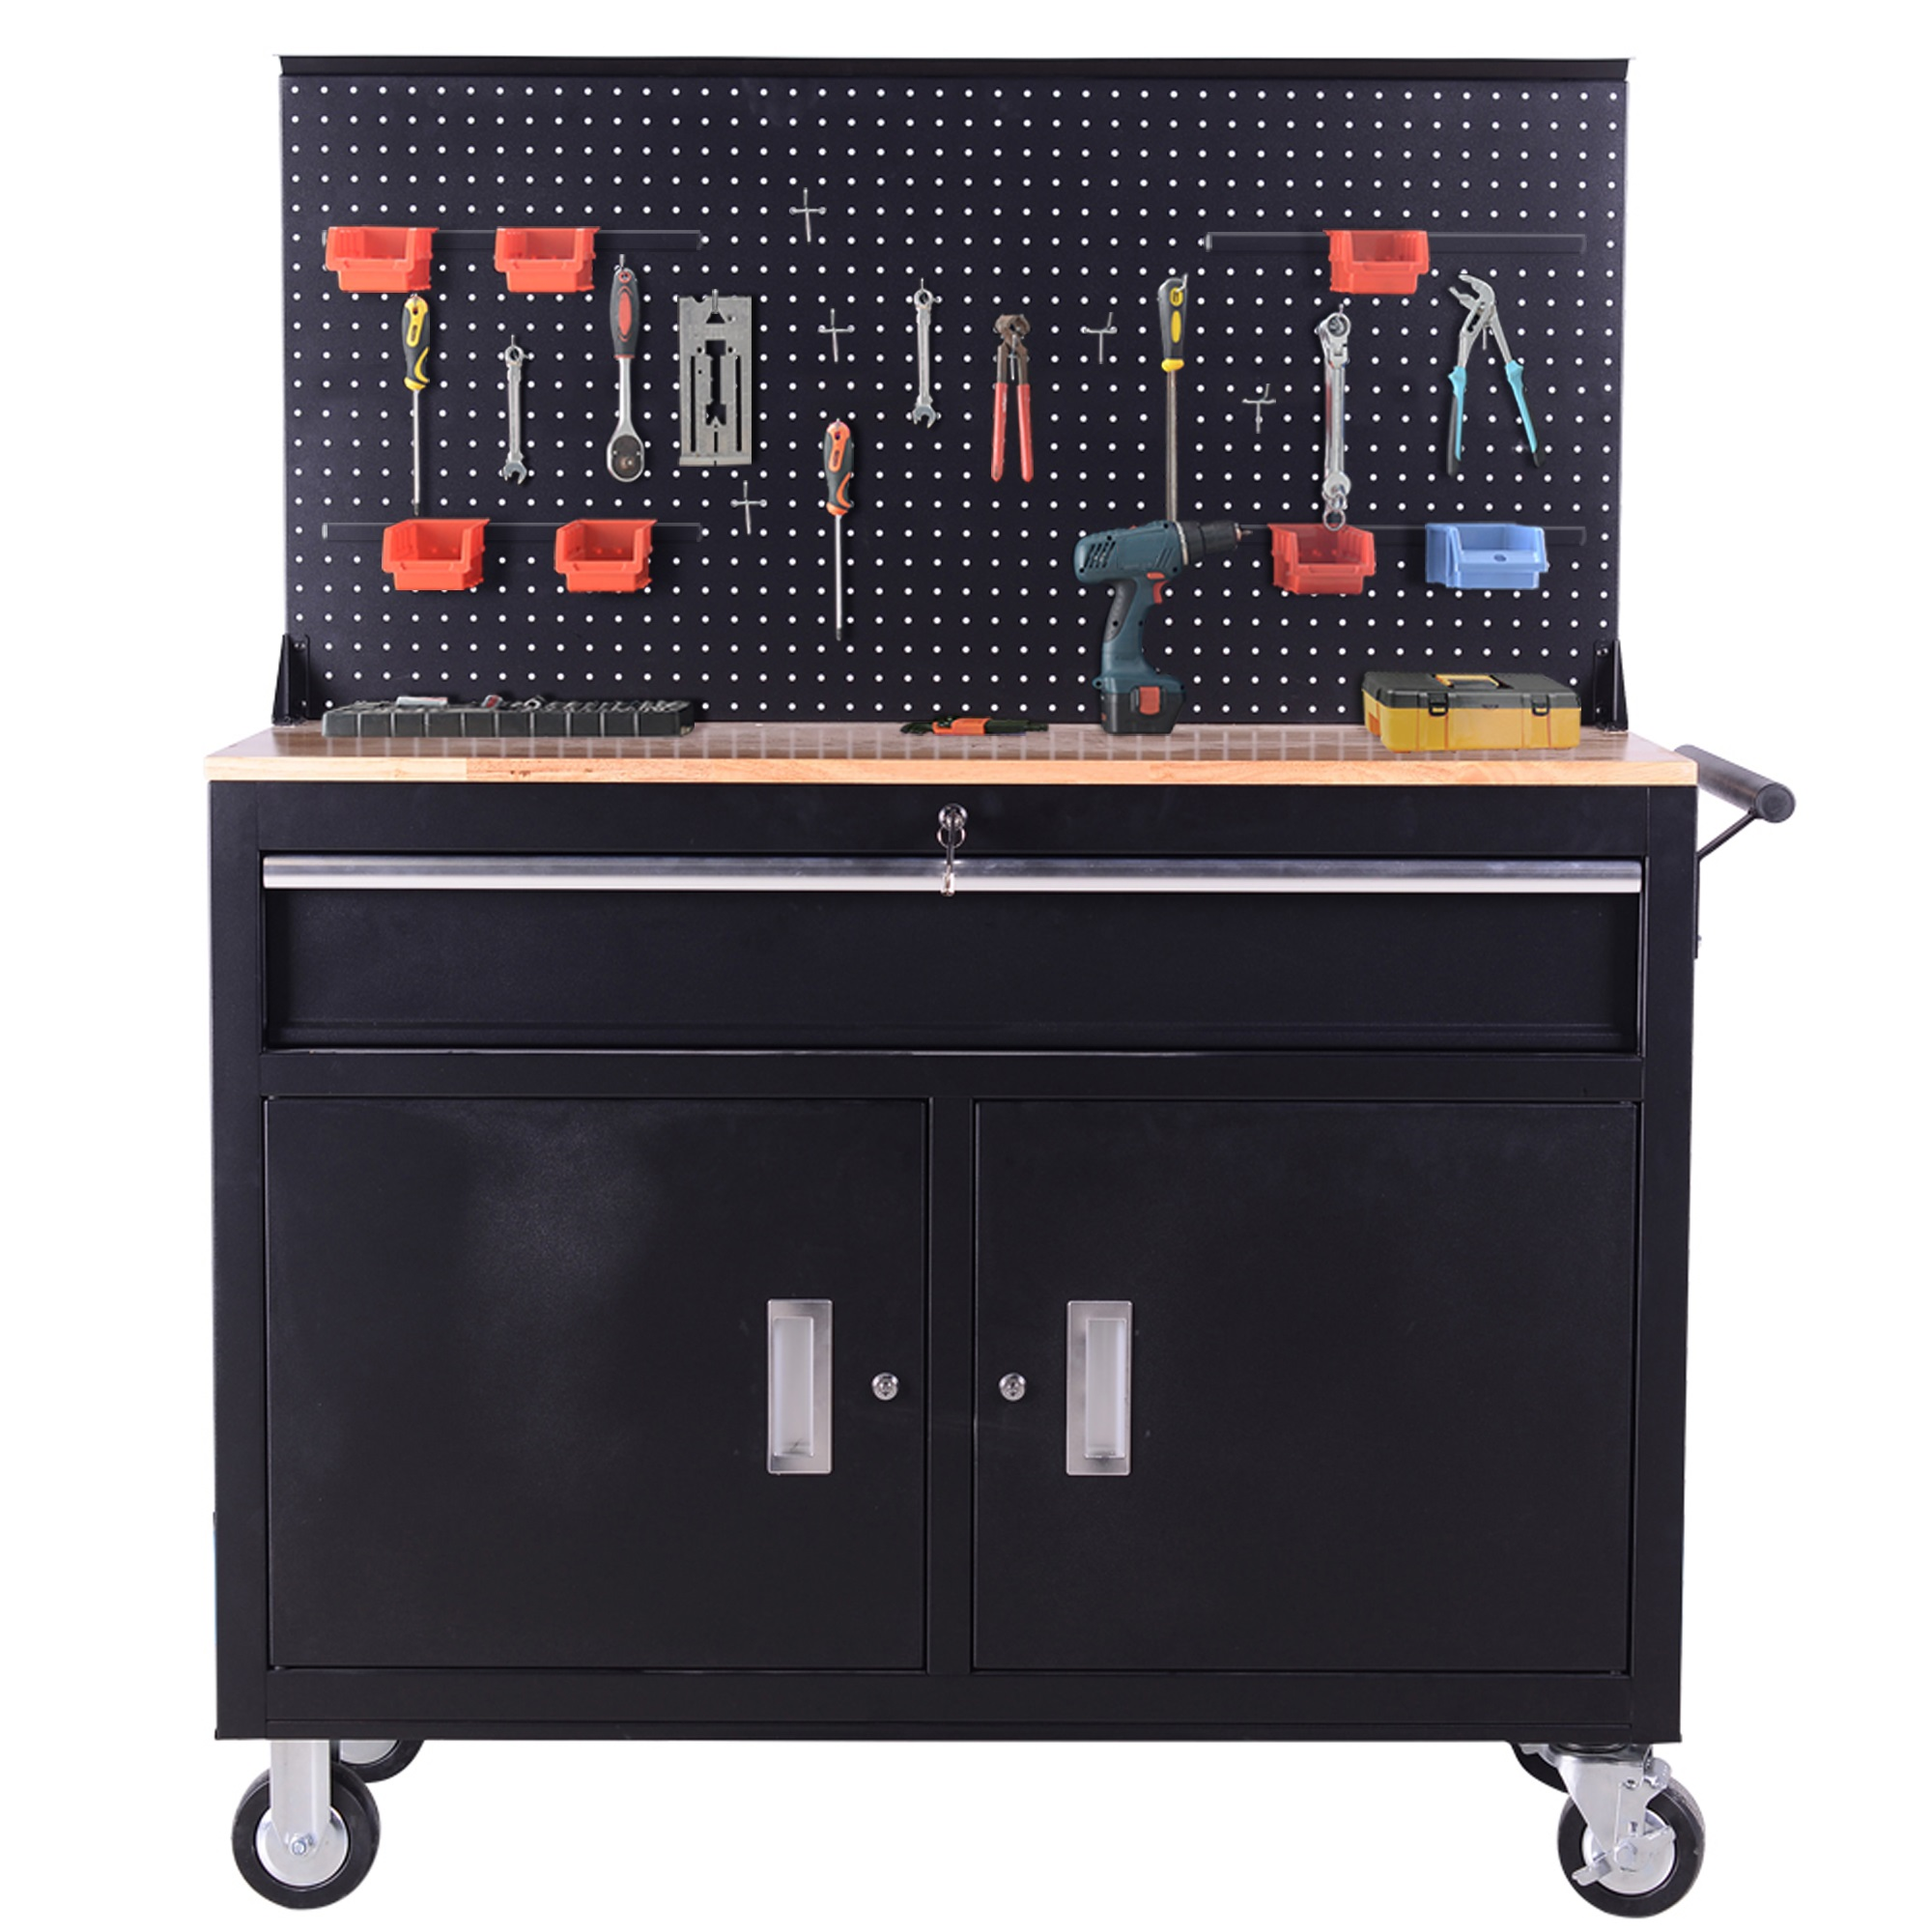 46 inch FRONTIER Mobile work station, tool chest, tool cabinet, with pegboard.